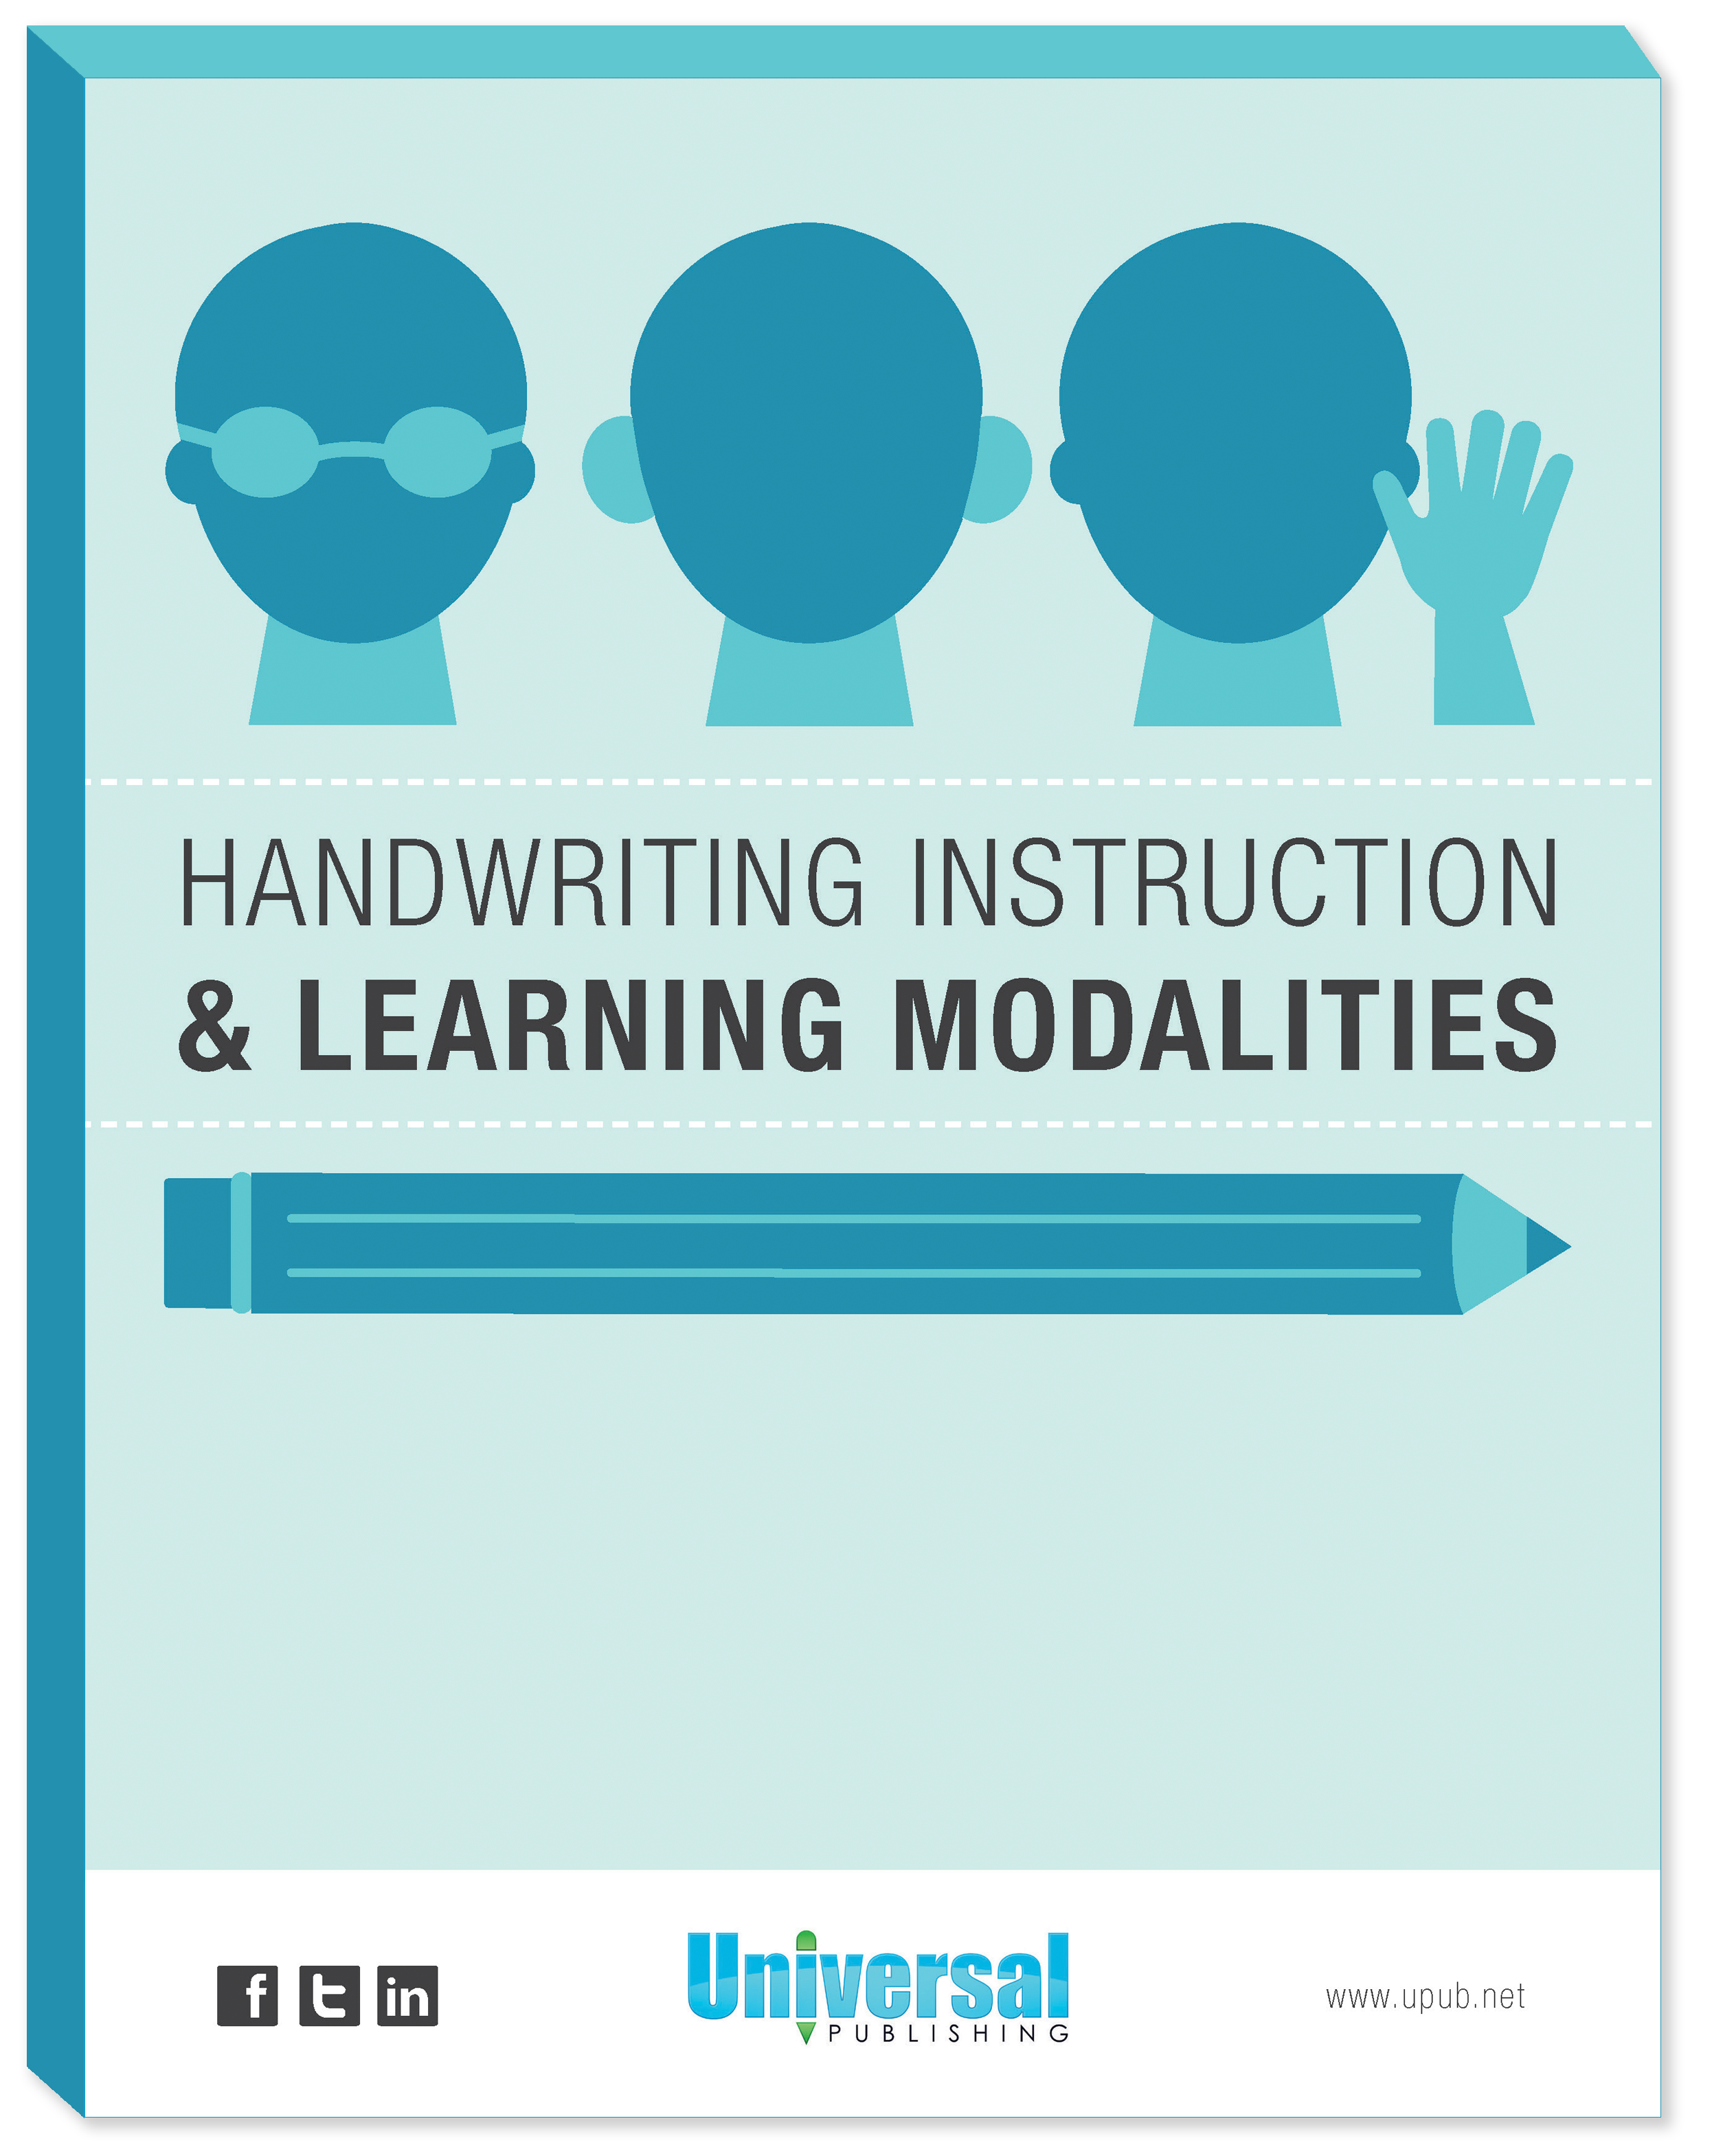 Handwriting-Instruction-Learning-Modalities-Ebook-Cover